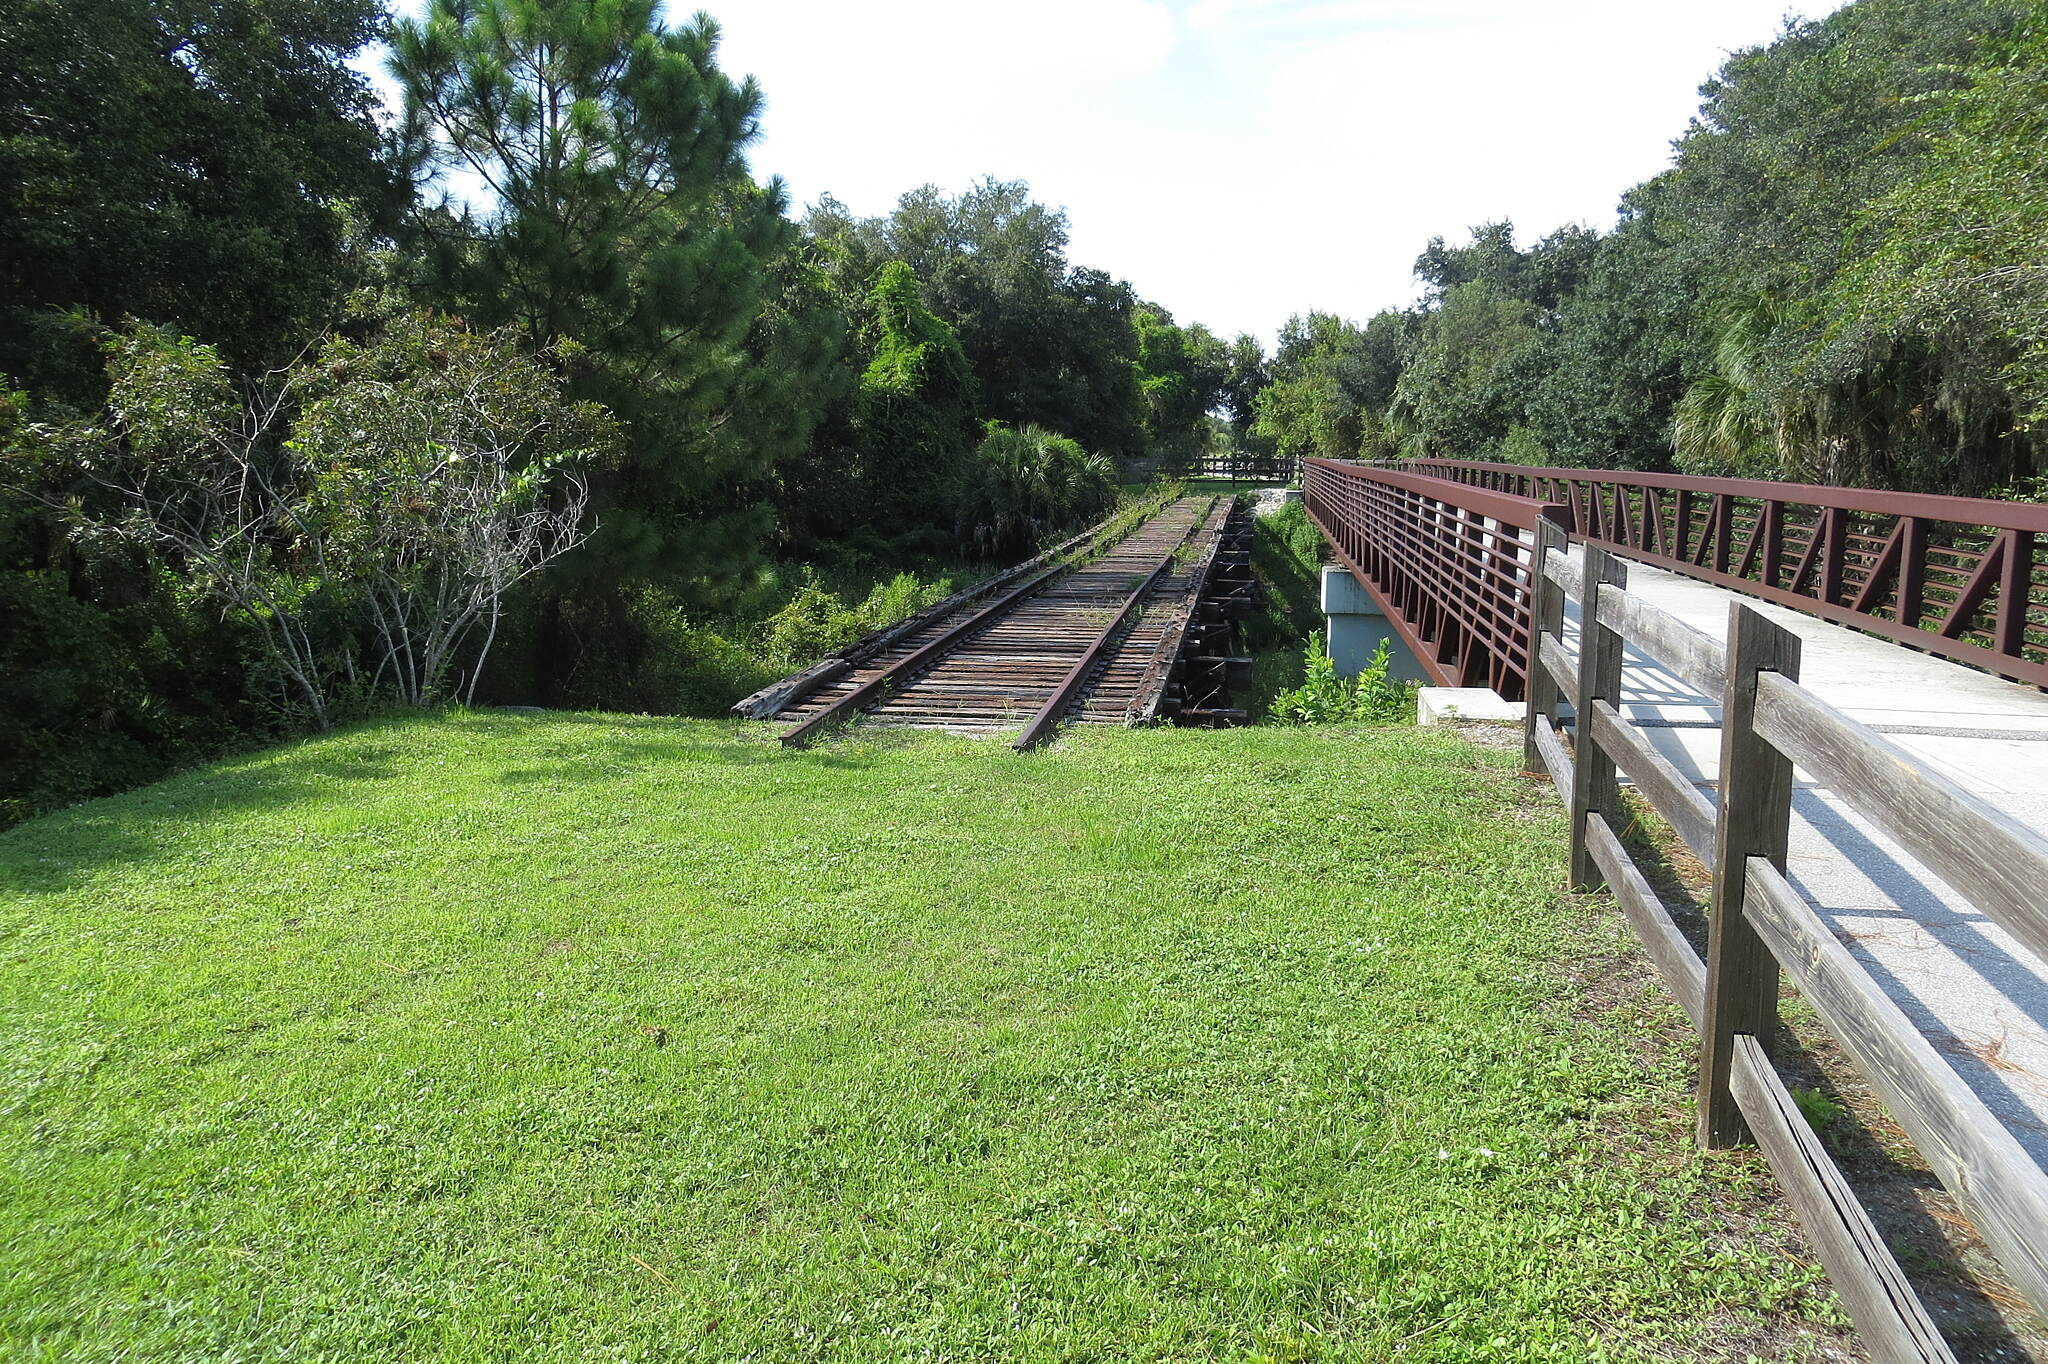 Legacy Trail (FL) Legacy Trail The rail-trail offers a glimpse of the old railroad track.